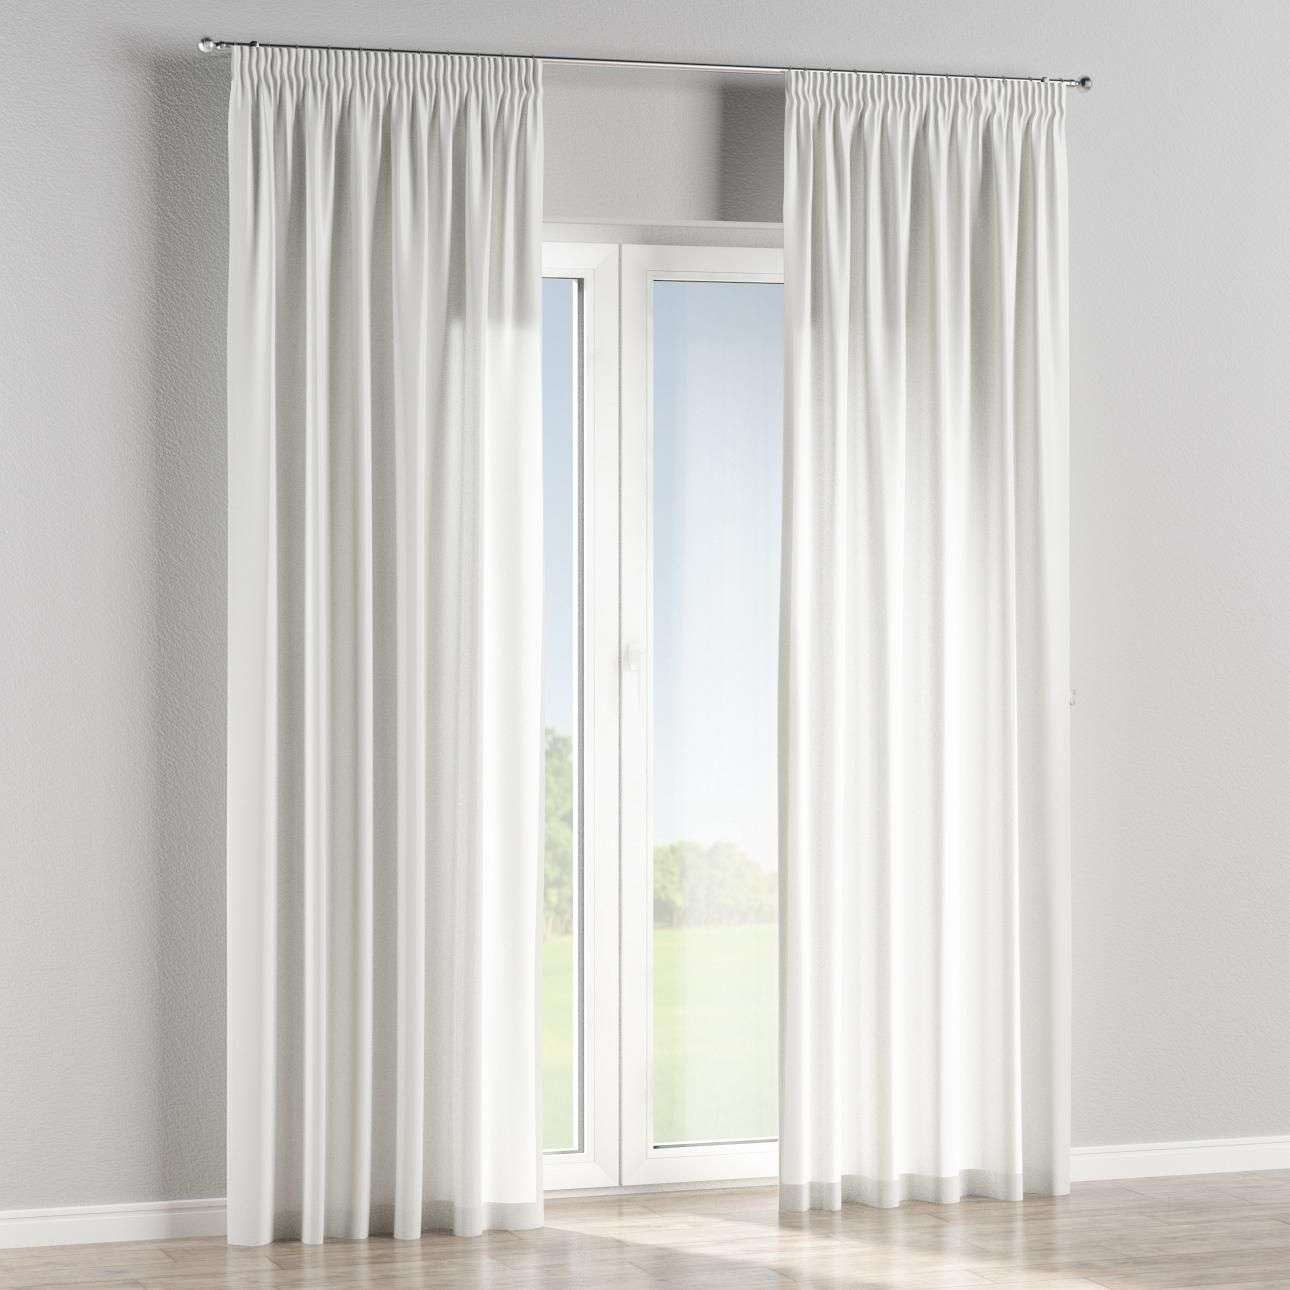 Pencil pleat lined curtains in collection SALE, fabric: 135-11